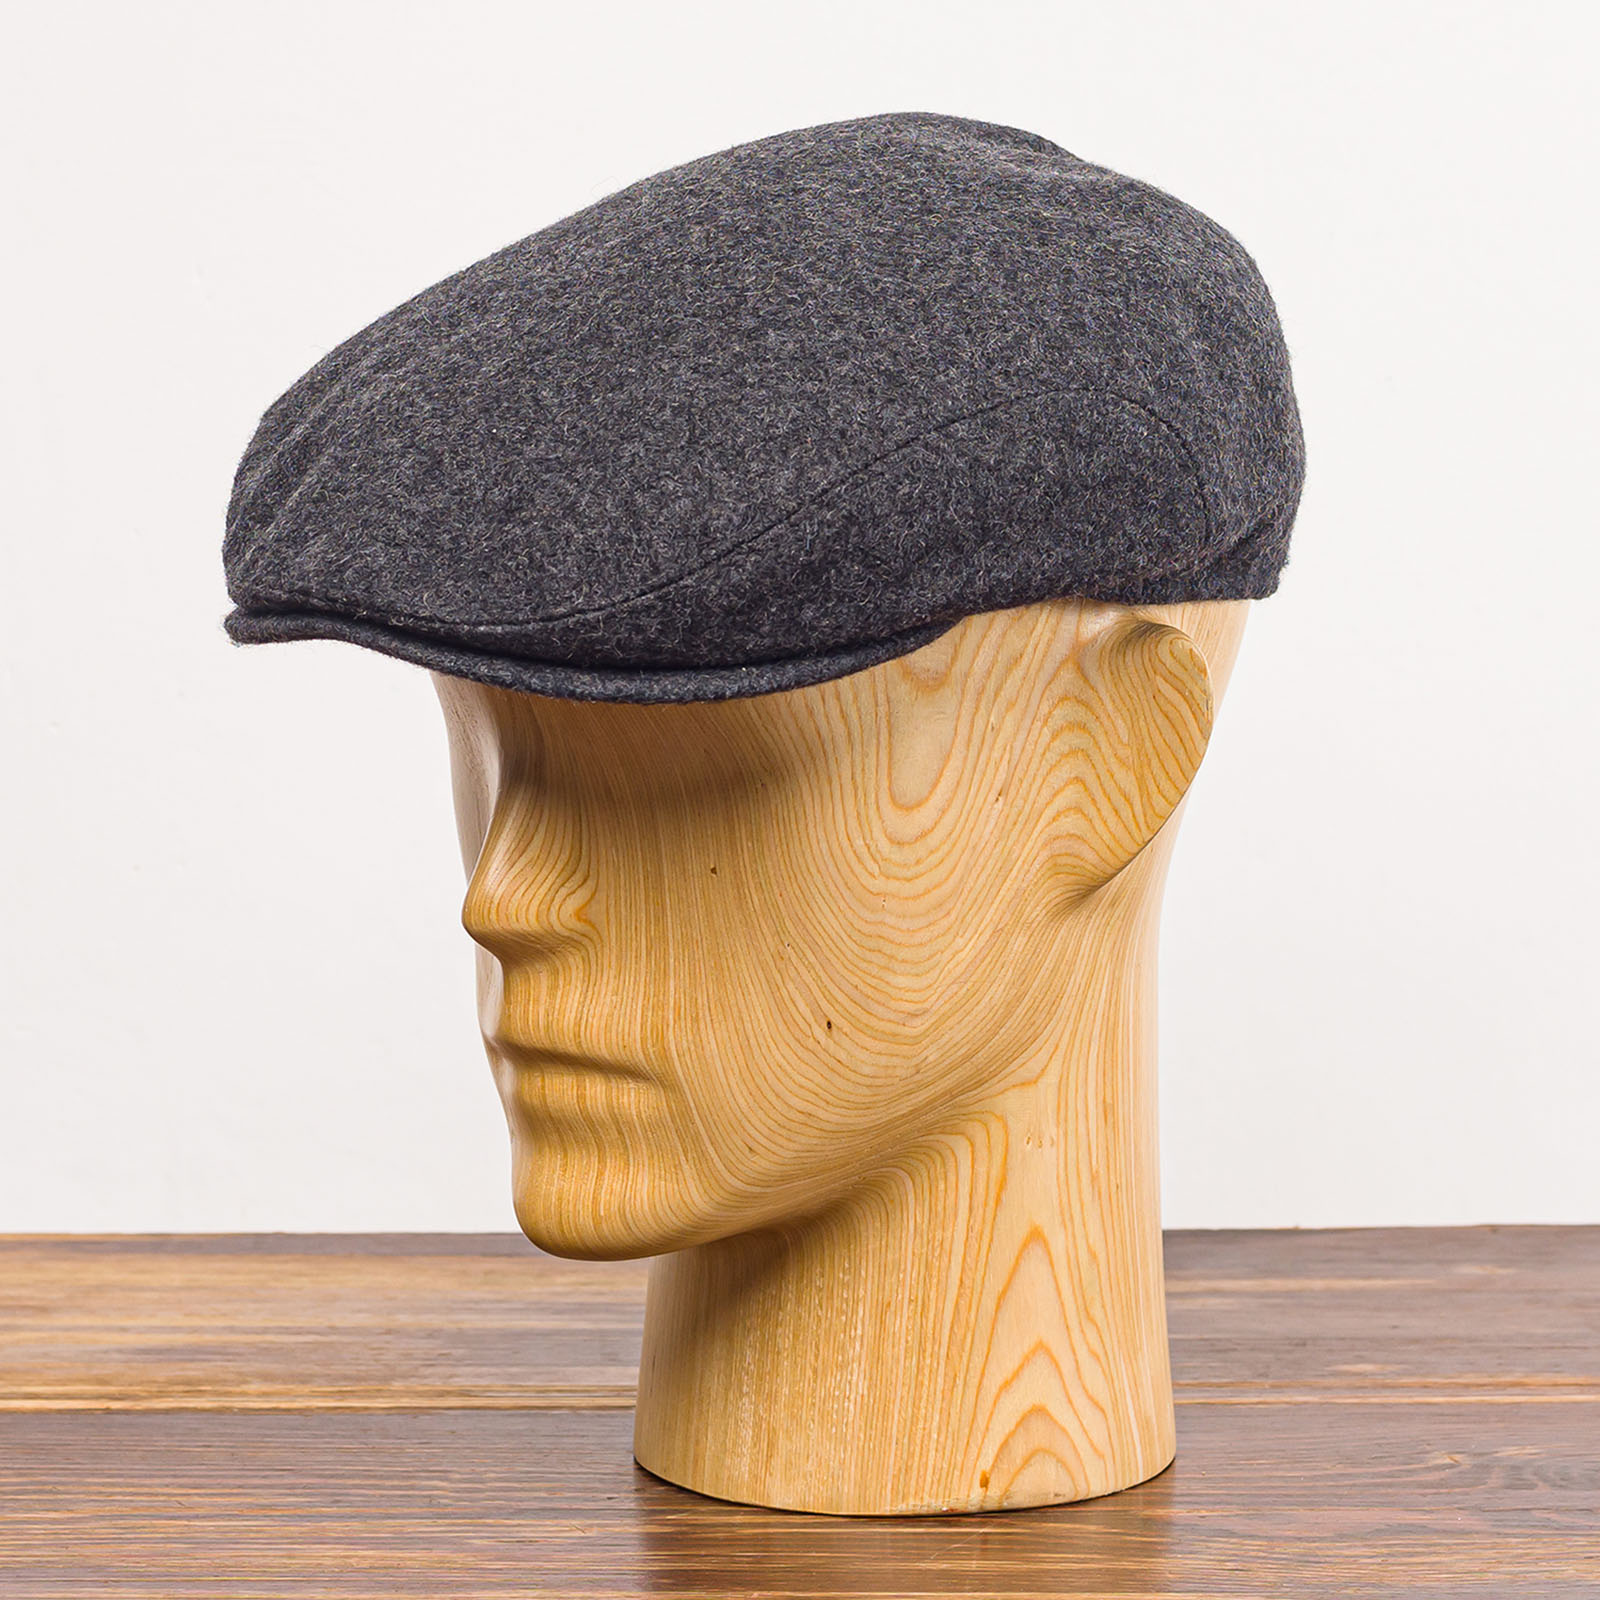 Classic flat cap ivy league vintage wool cloth English Gatsby dai jeff derby paddy driving duffer cheese-cutter